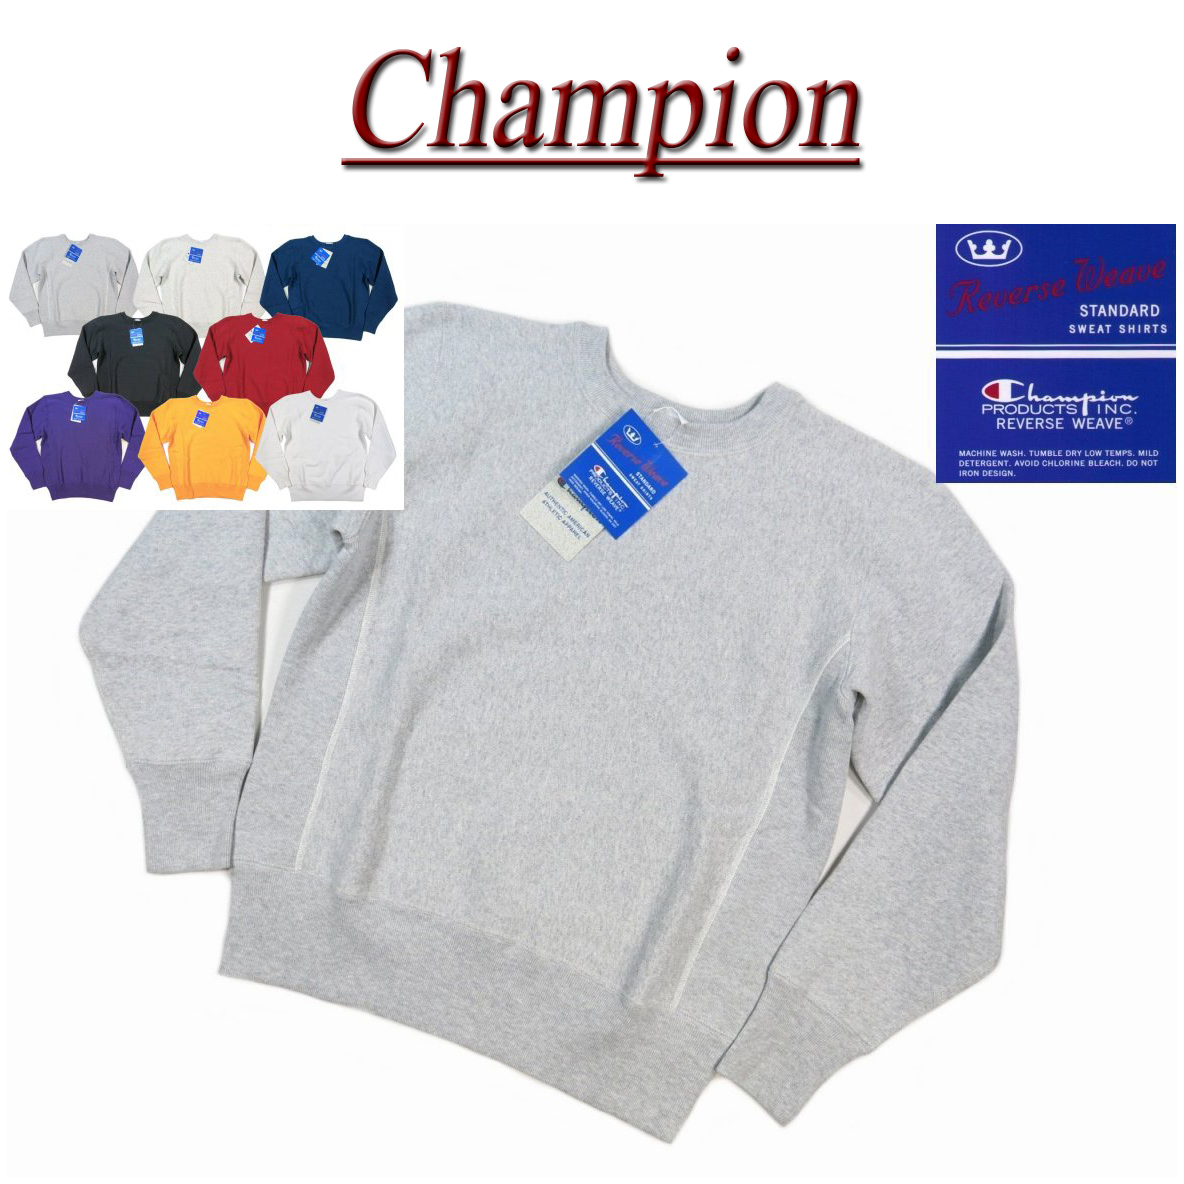 b0d76f25 ch261 new Champion REVERSE WEAVE weave blue just tags back brushed plain  sweat shirt C3- ...